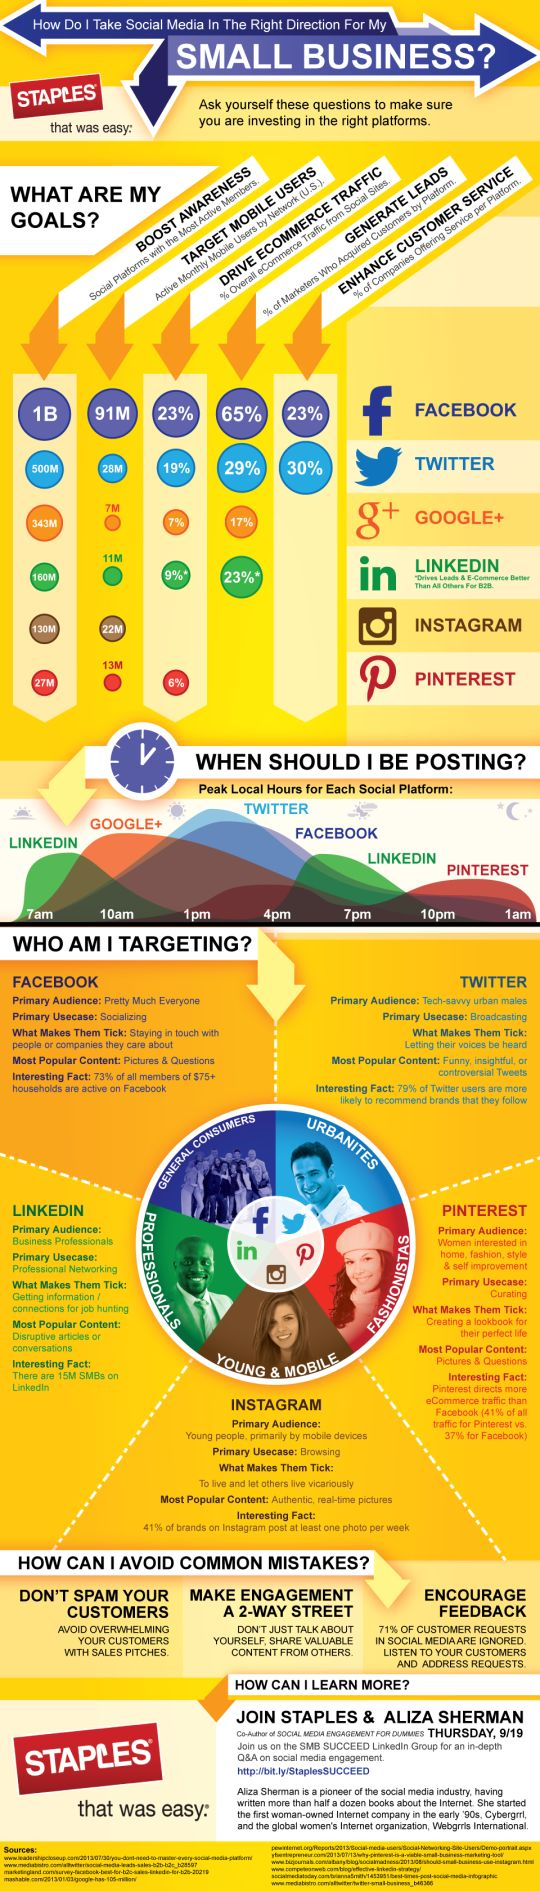 ENTREPRENEURSHIP - What Social Networks Should You Use to Promote Your Business or Blog? [Infographic]